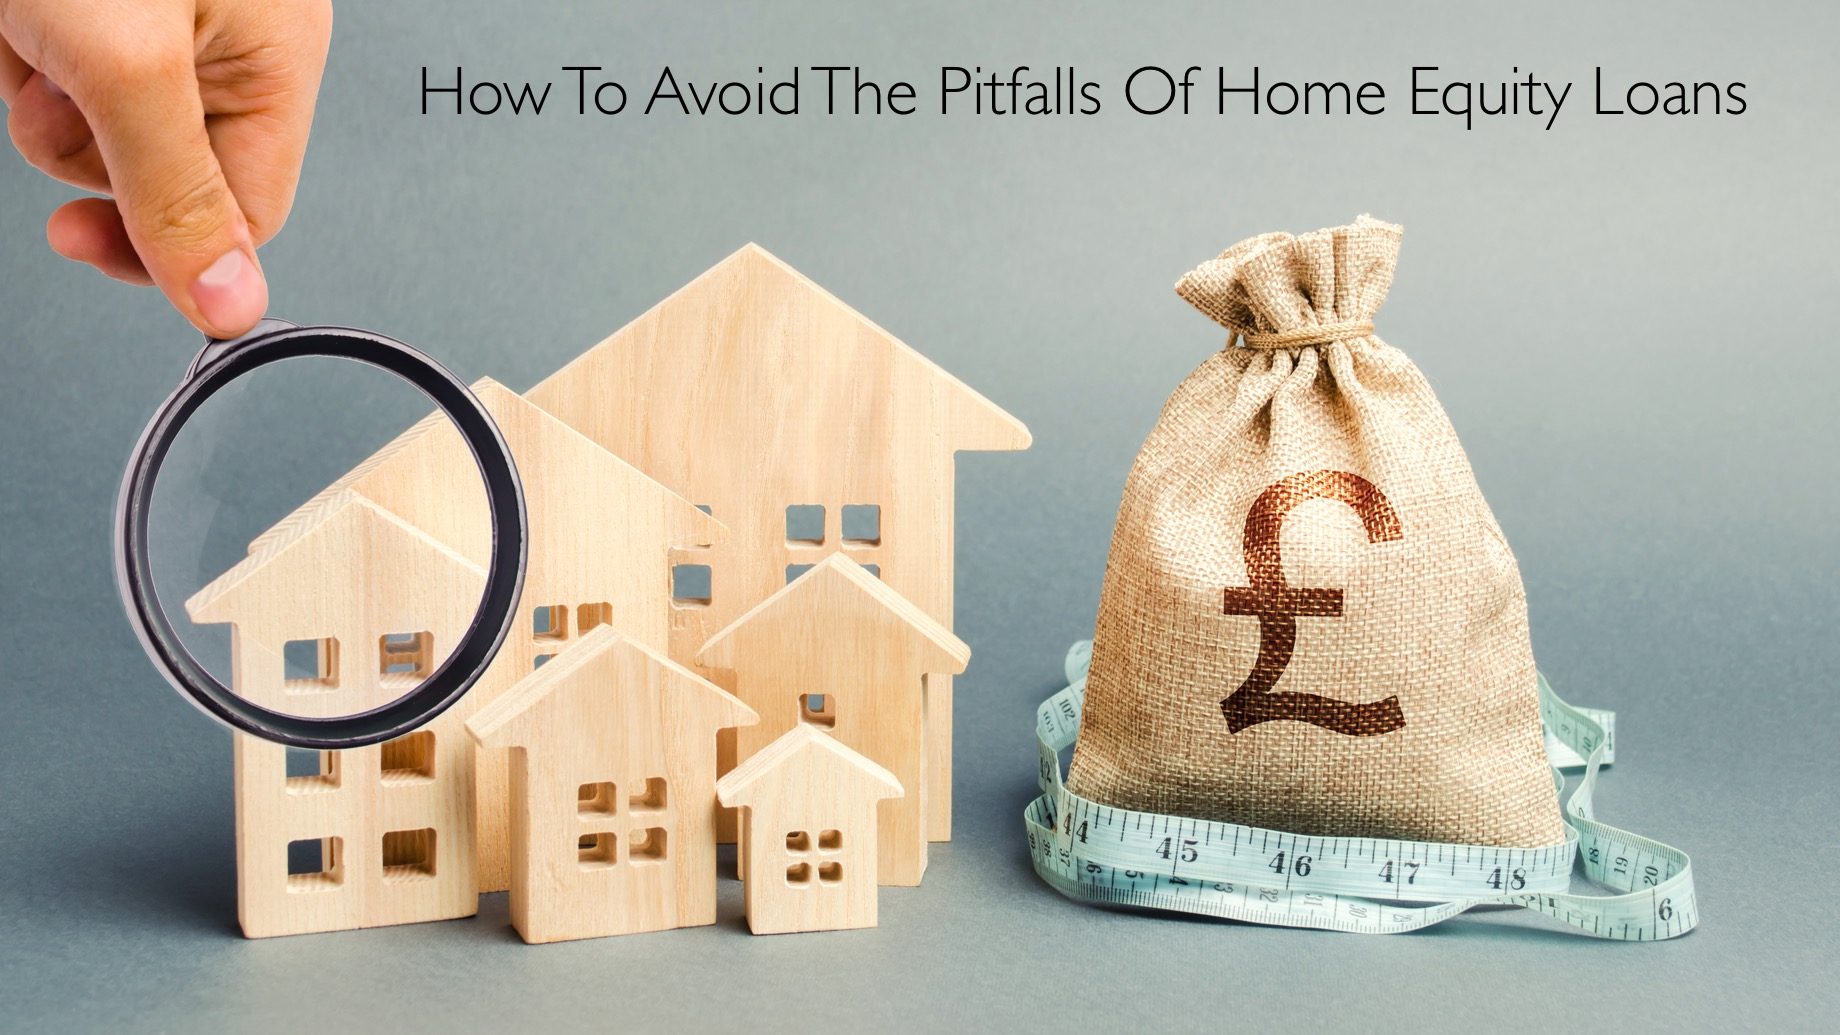 How To Avoid The Pitfalls Of Home Equity Loans